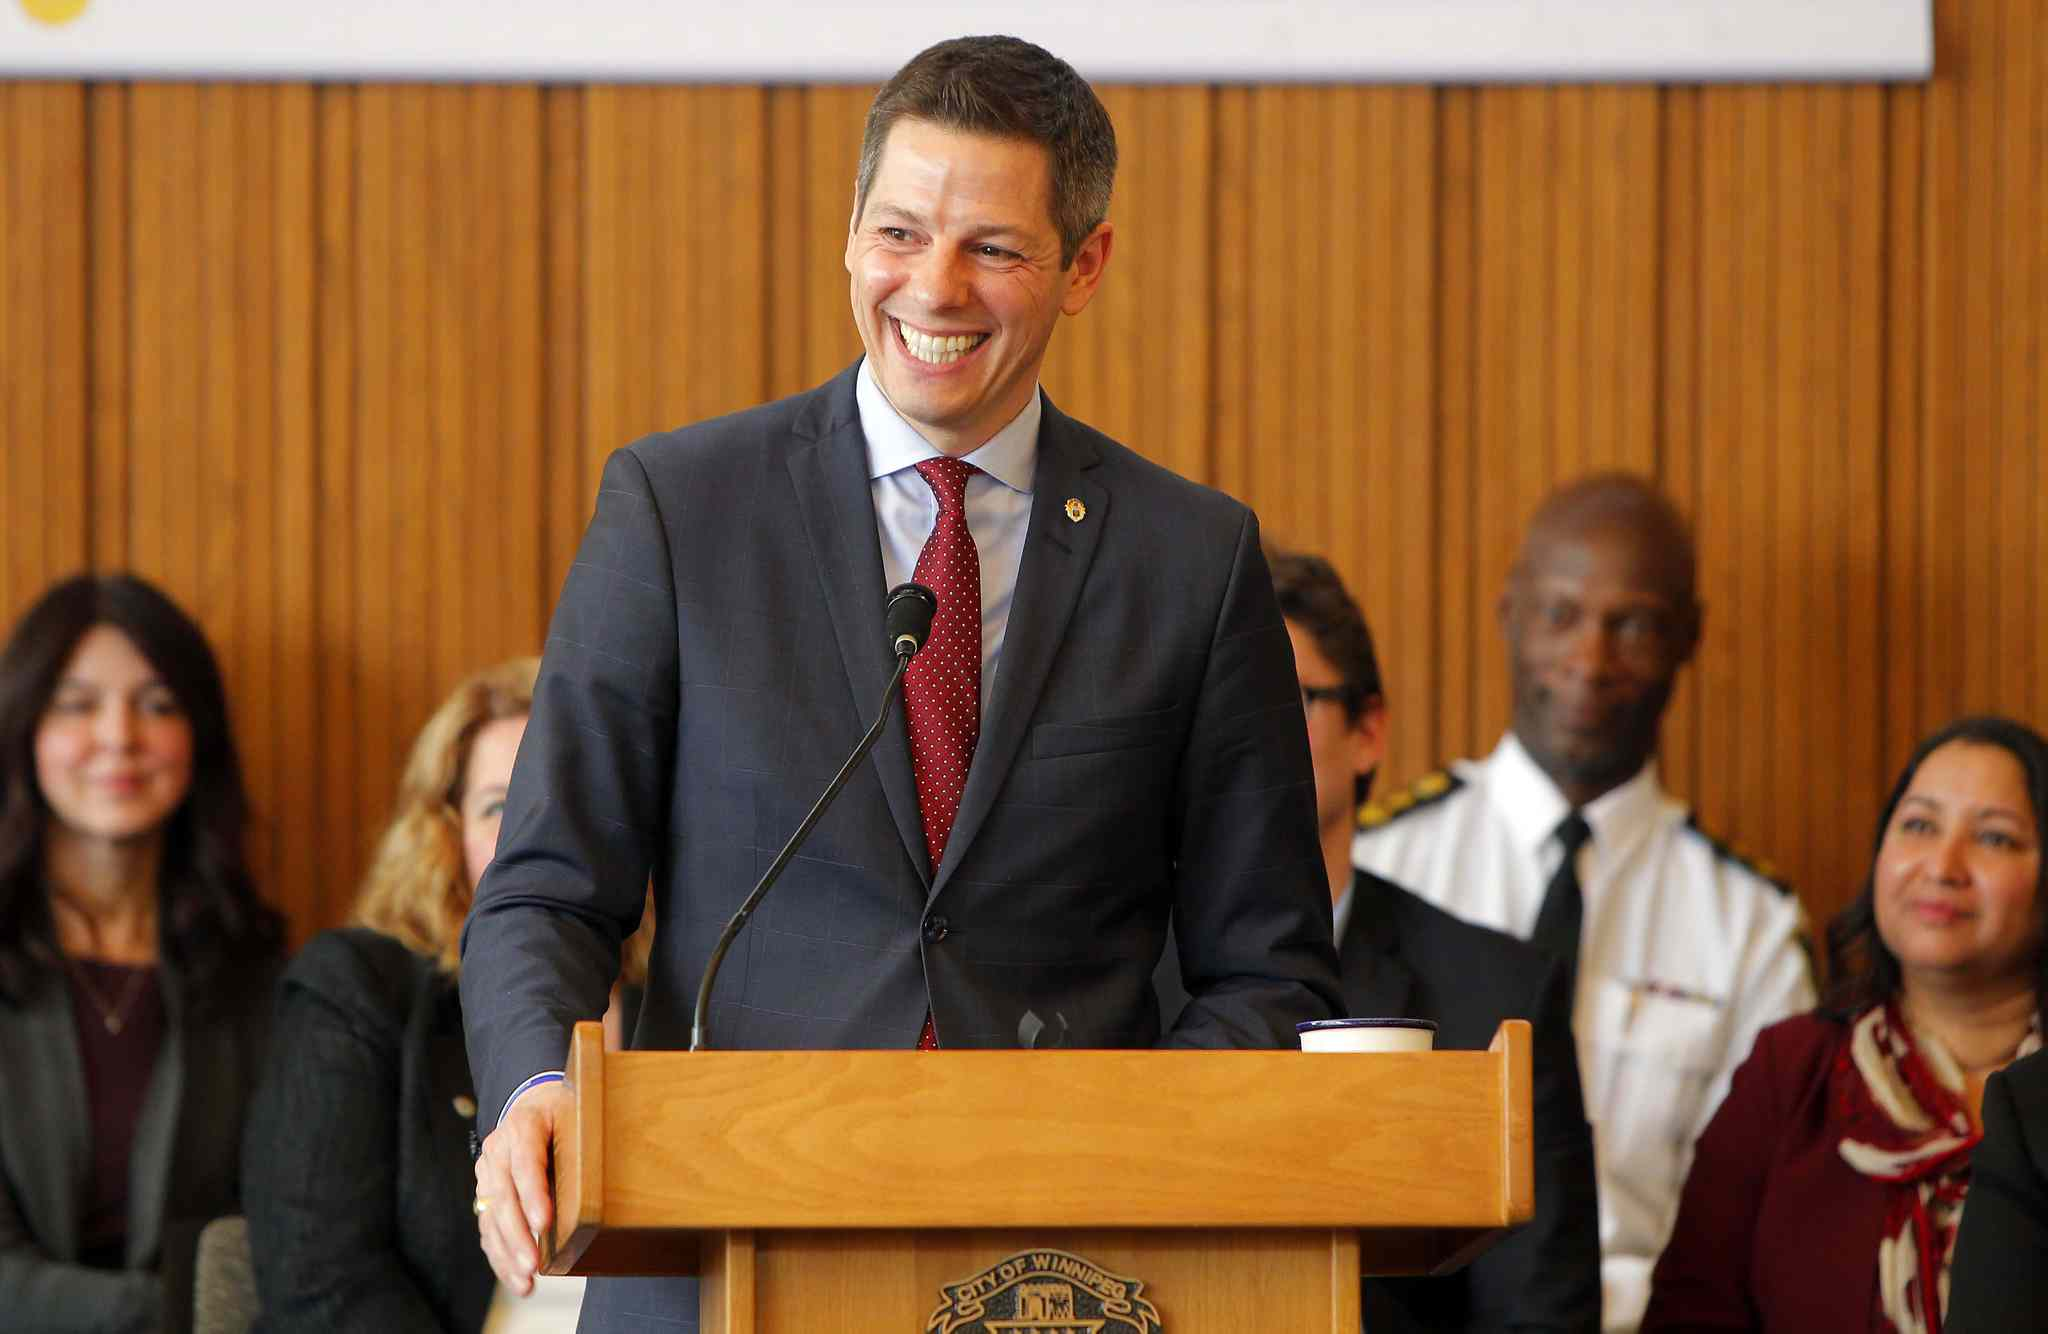 Mayor Brian Bowman said he has reflected on the year following Winnipeg being labelled the most racist city in Winnipeg by Maclean's magazine.